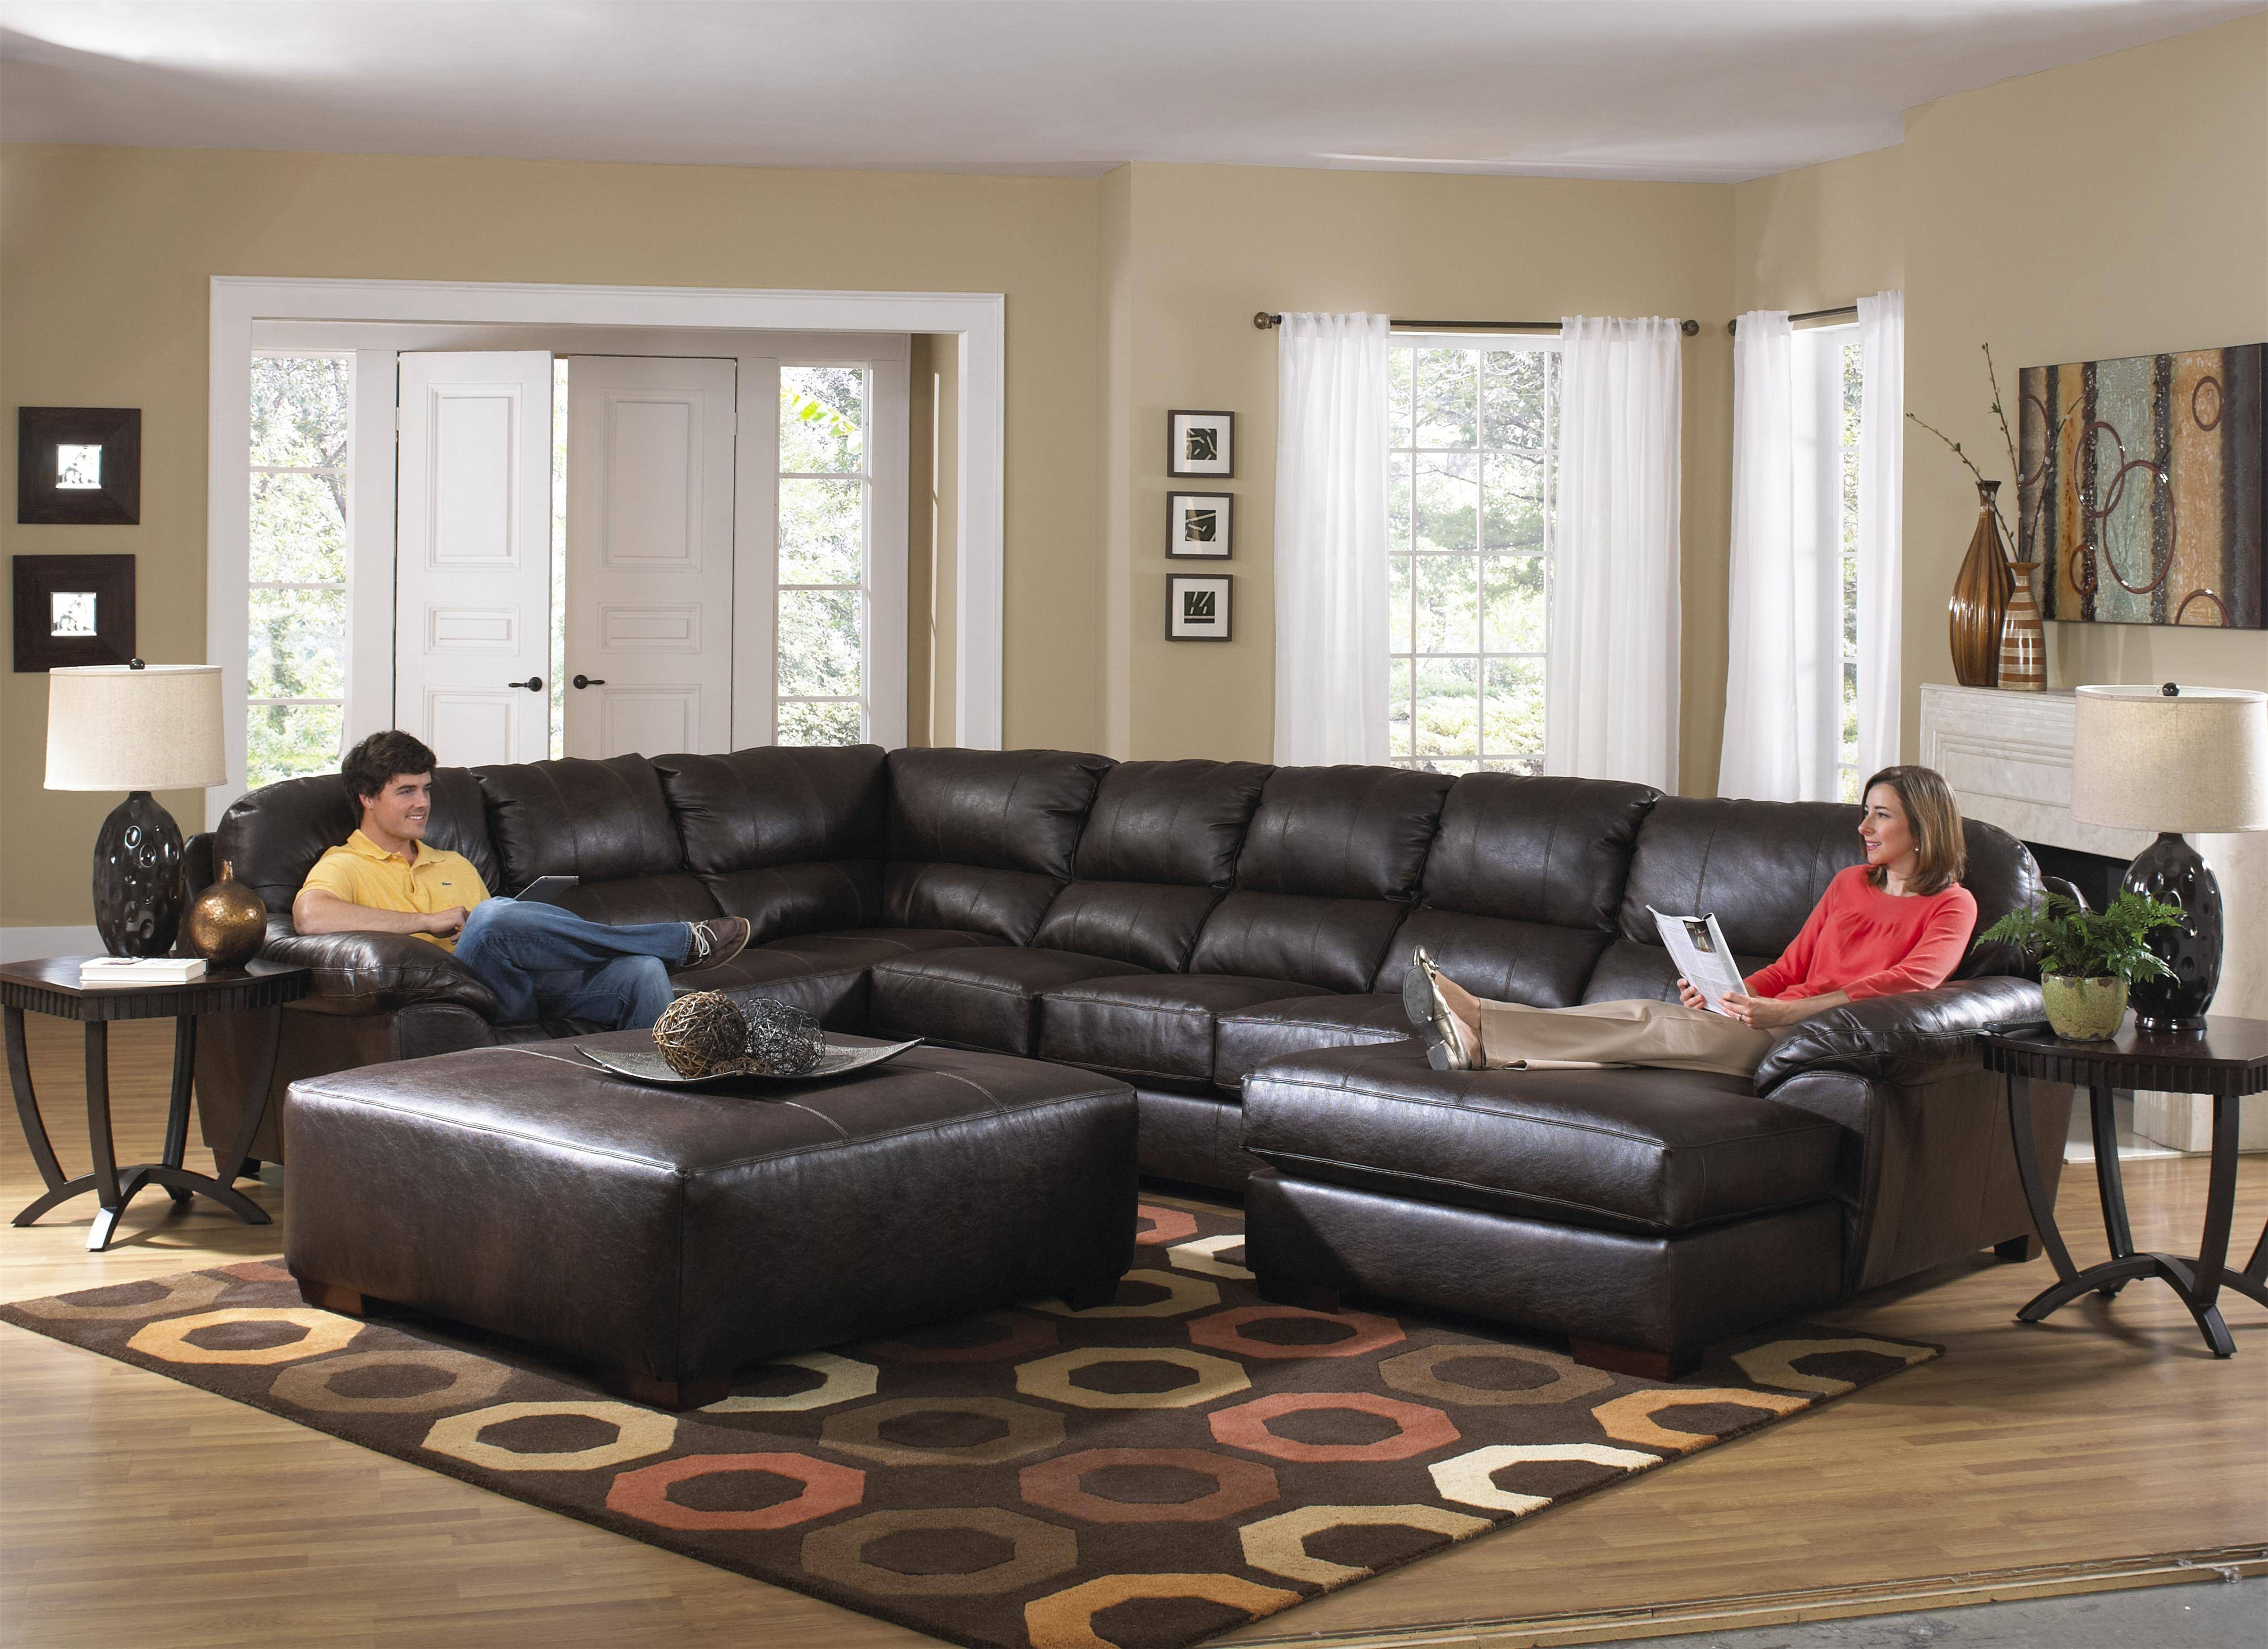 Furniture: Interesting Living Room Interior Using Large Sectional intended for Extra Large Leather Sectional Sofas (Image 10 of 15)